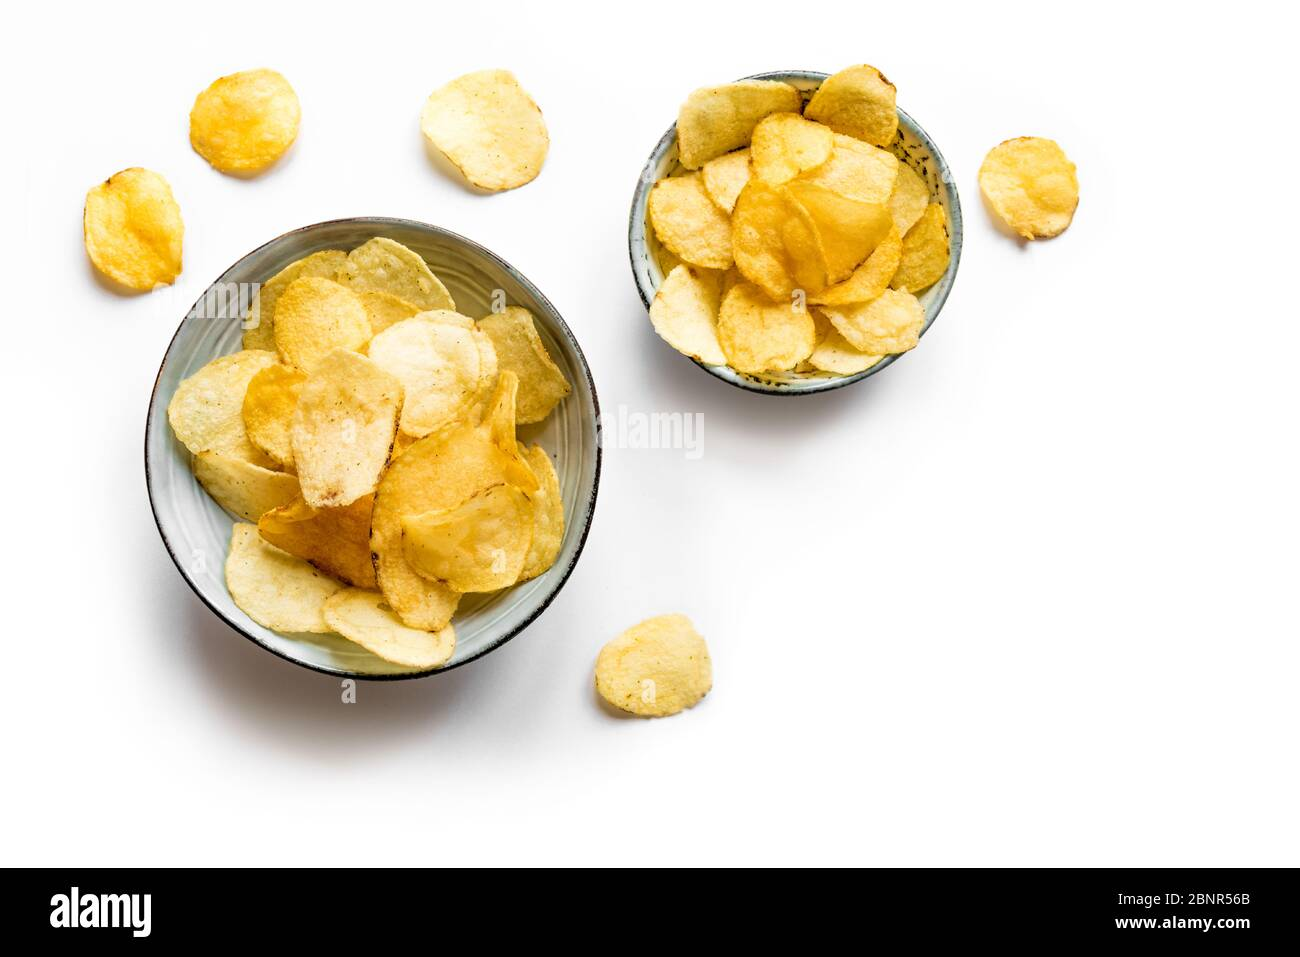 Potato chips in bowls isolated on white background. Homemade oven baked crispy potato chips, top view, copy space. Stock Photo